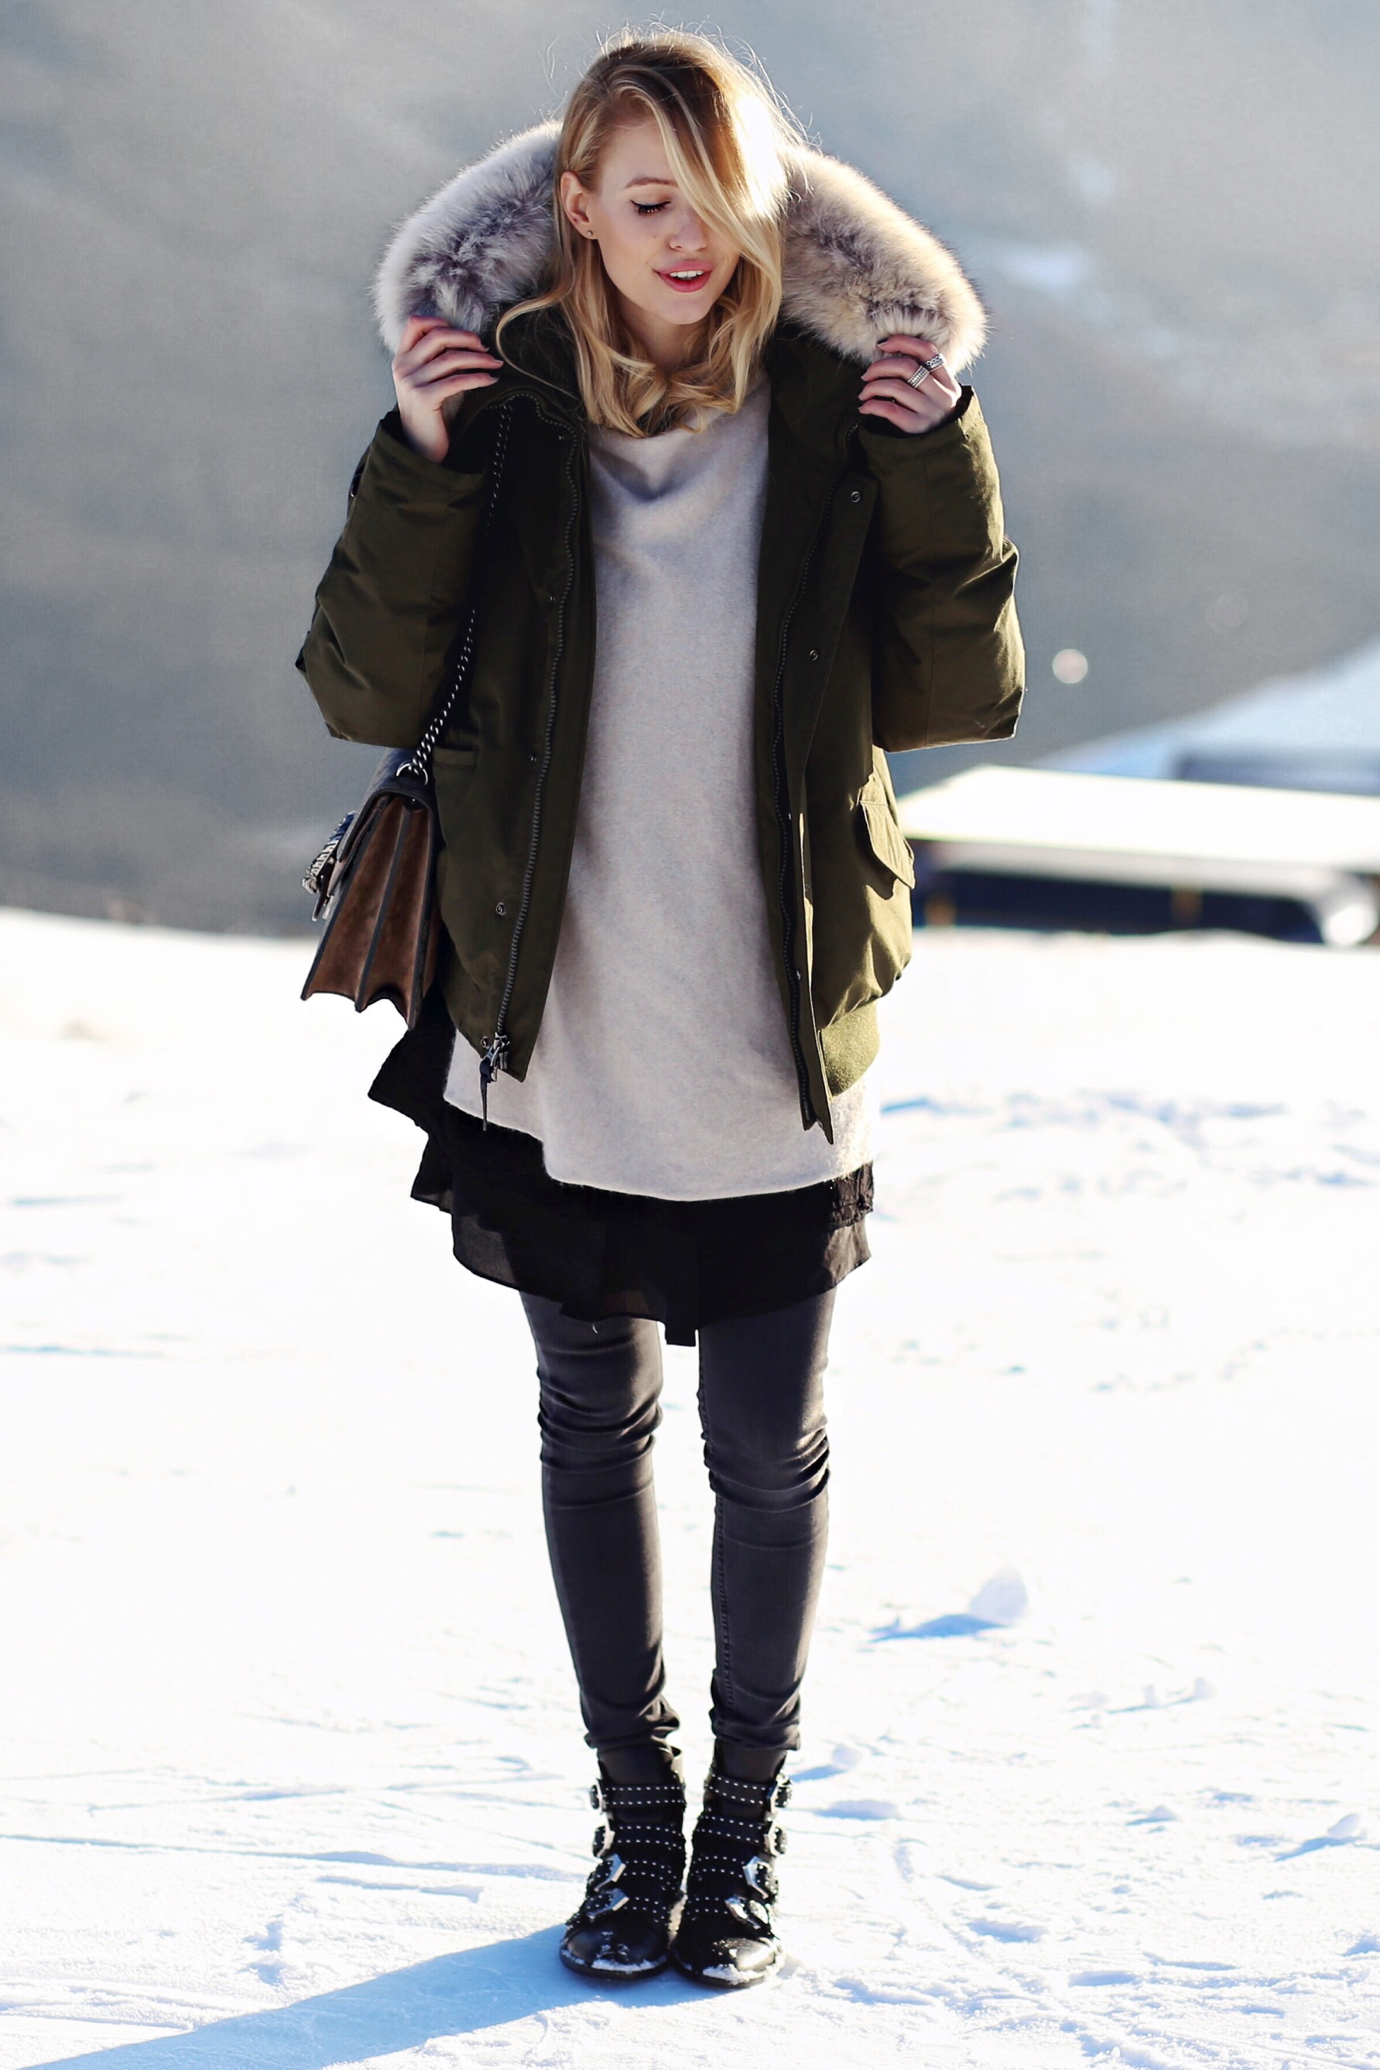 givenchy_boots_woolrich_parka_gucci_dionysus_ohhcouture4